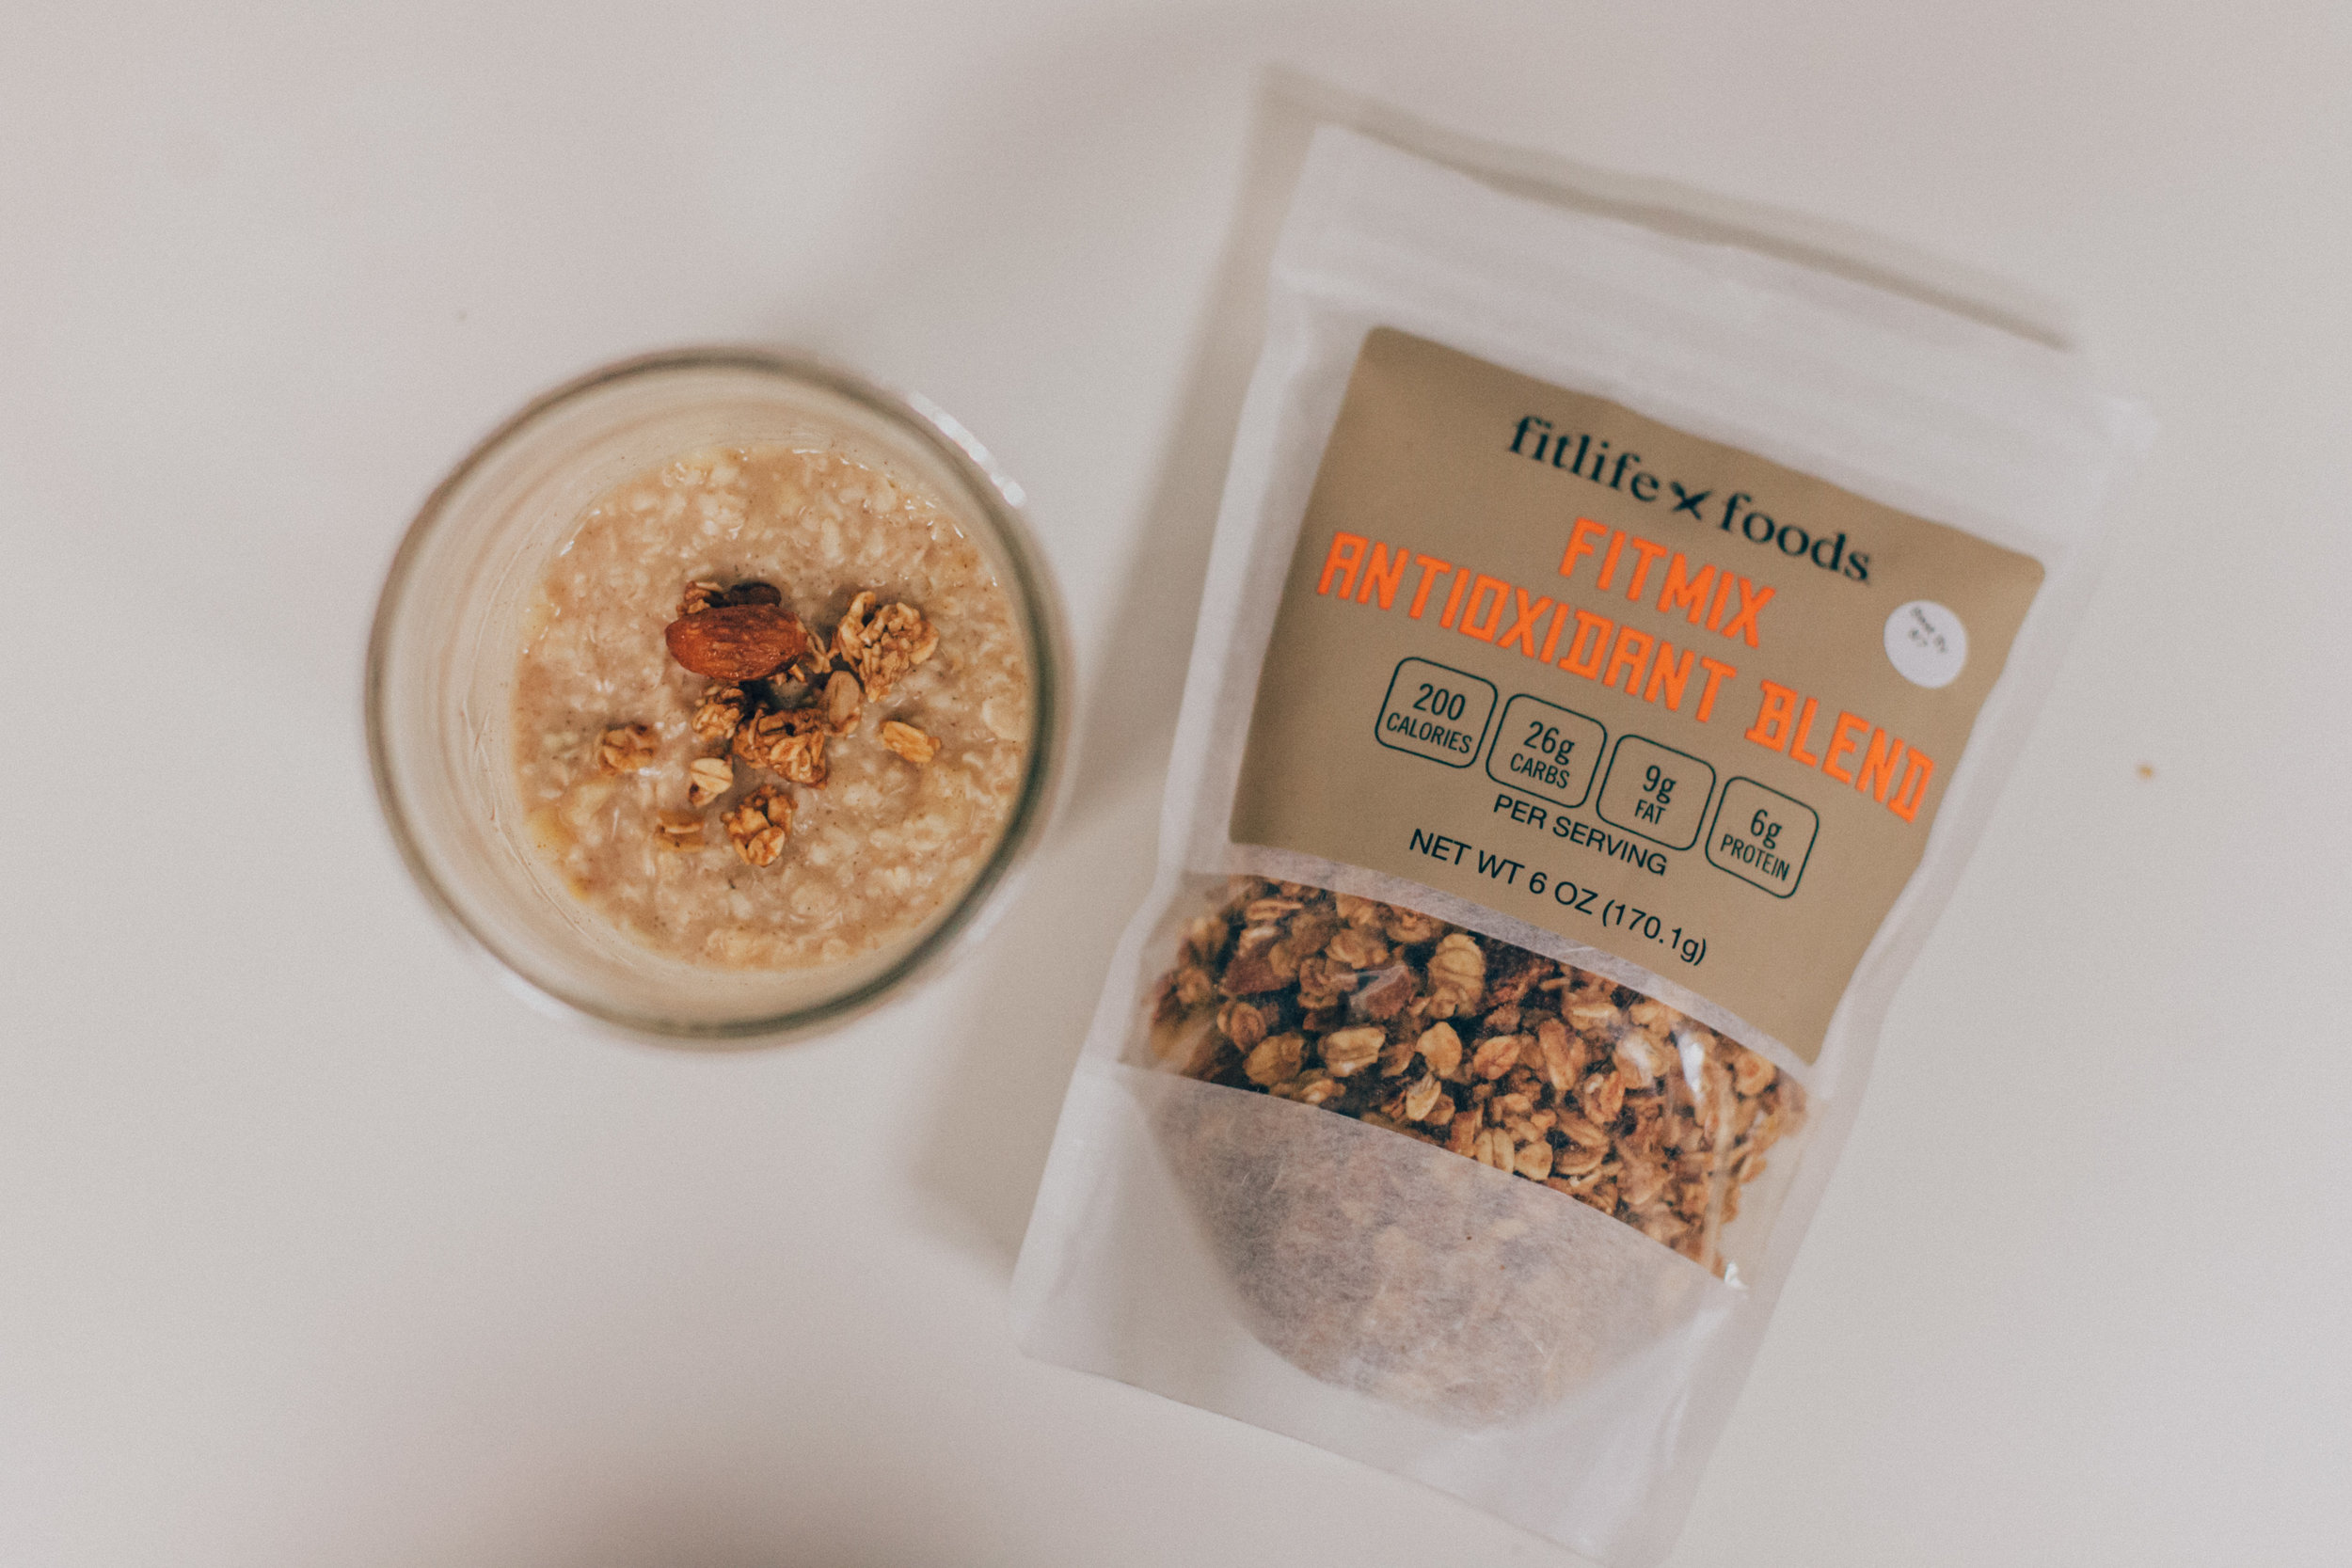 I blend the Fitmix Antioxidant Blend into my daily morning oatmeal to give me the protein fill I need to hold me over until lunchtime.